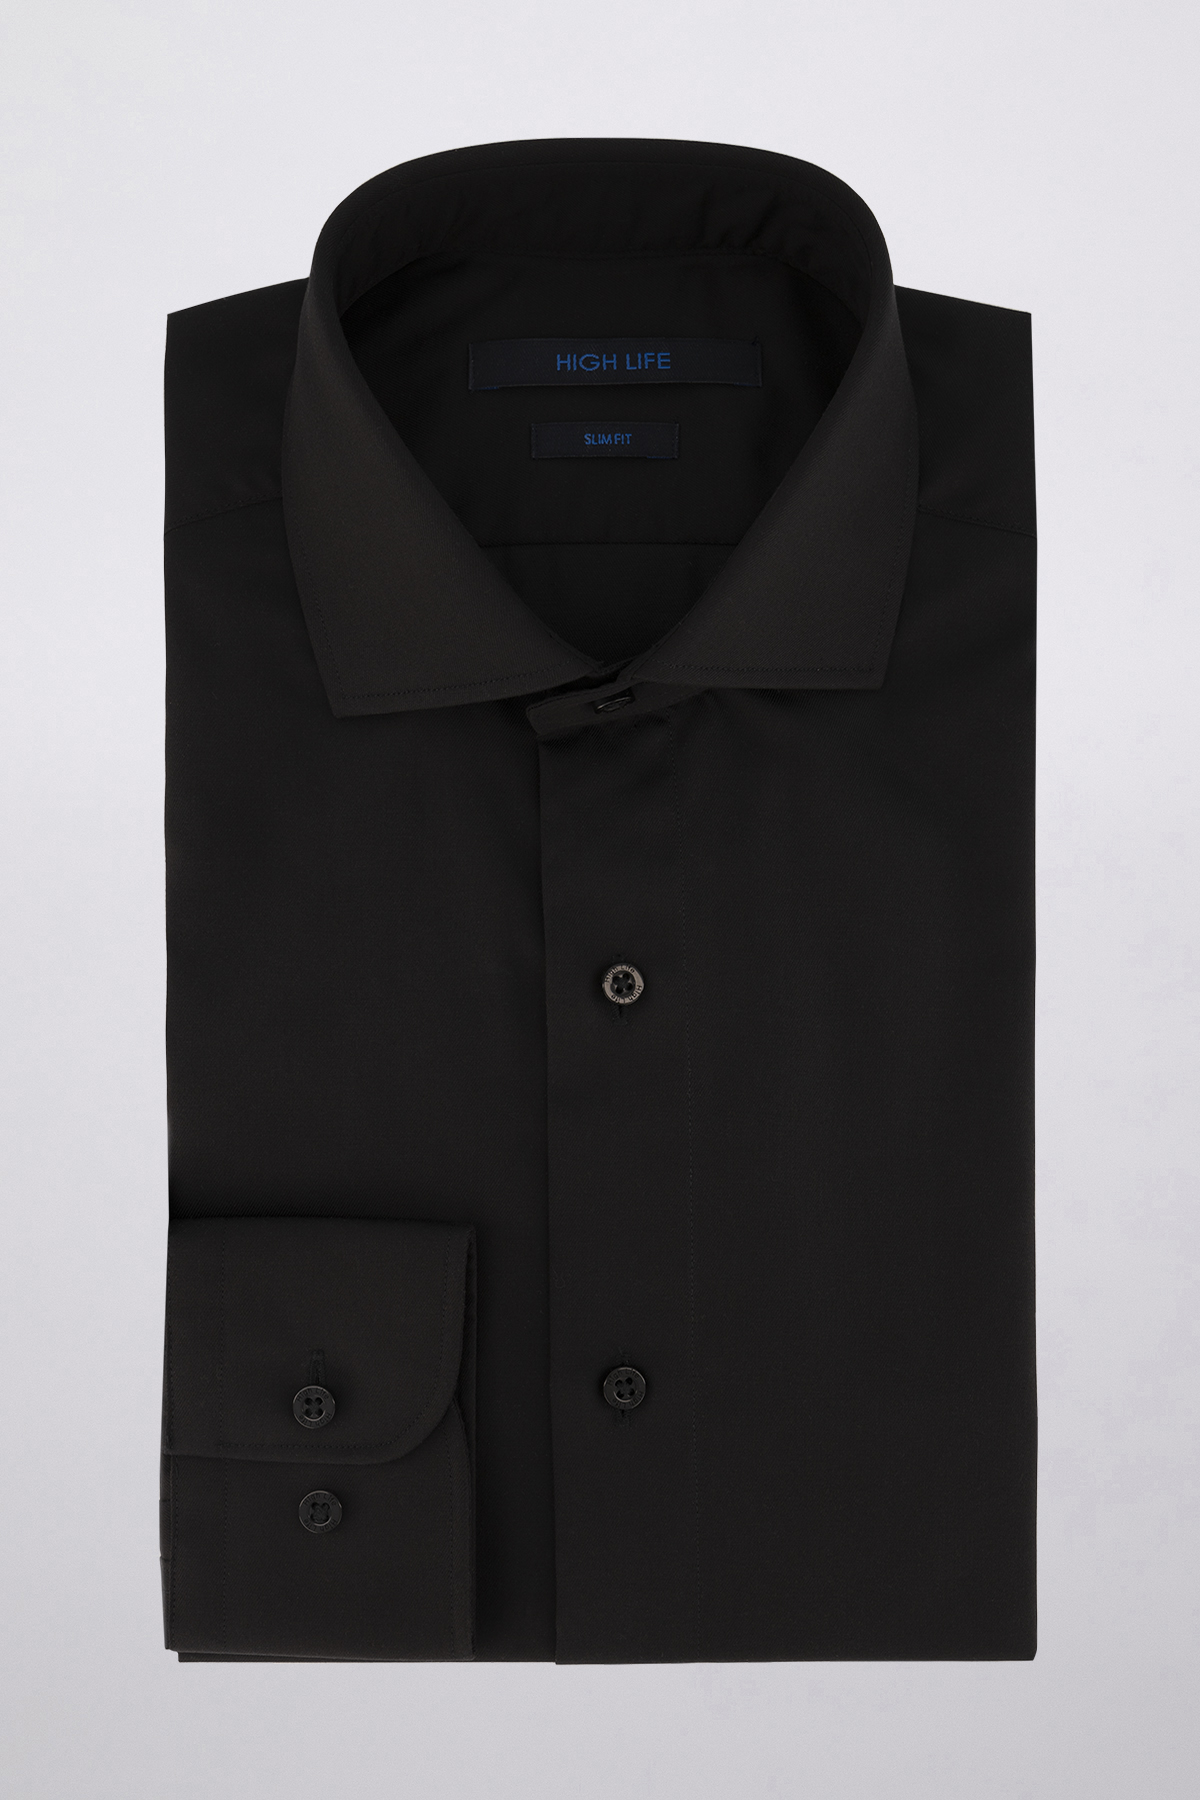 Camisa Vestir marca HIGH LIFE color Negro